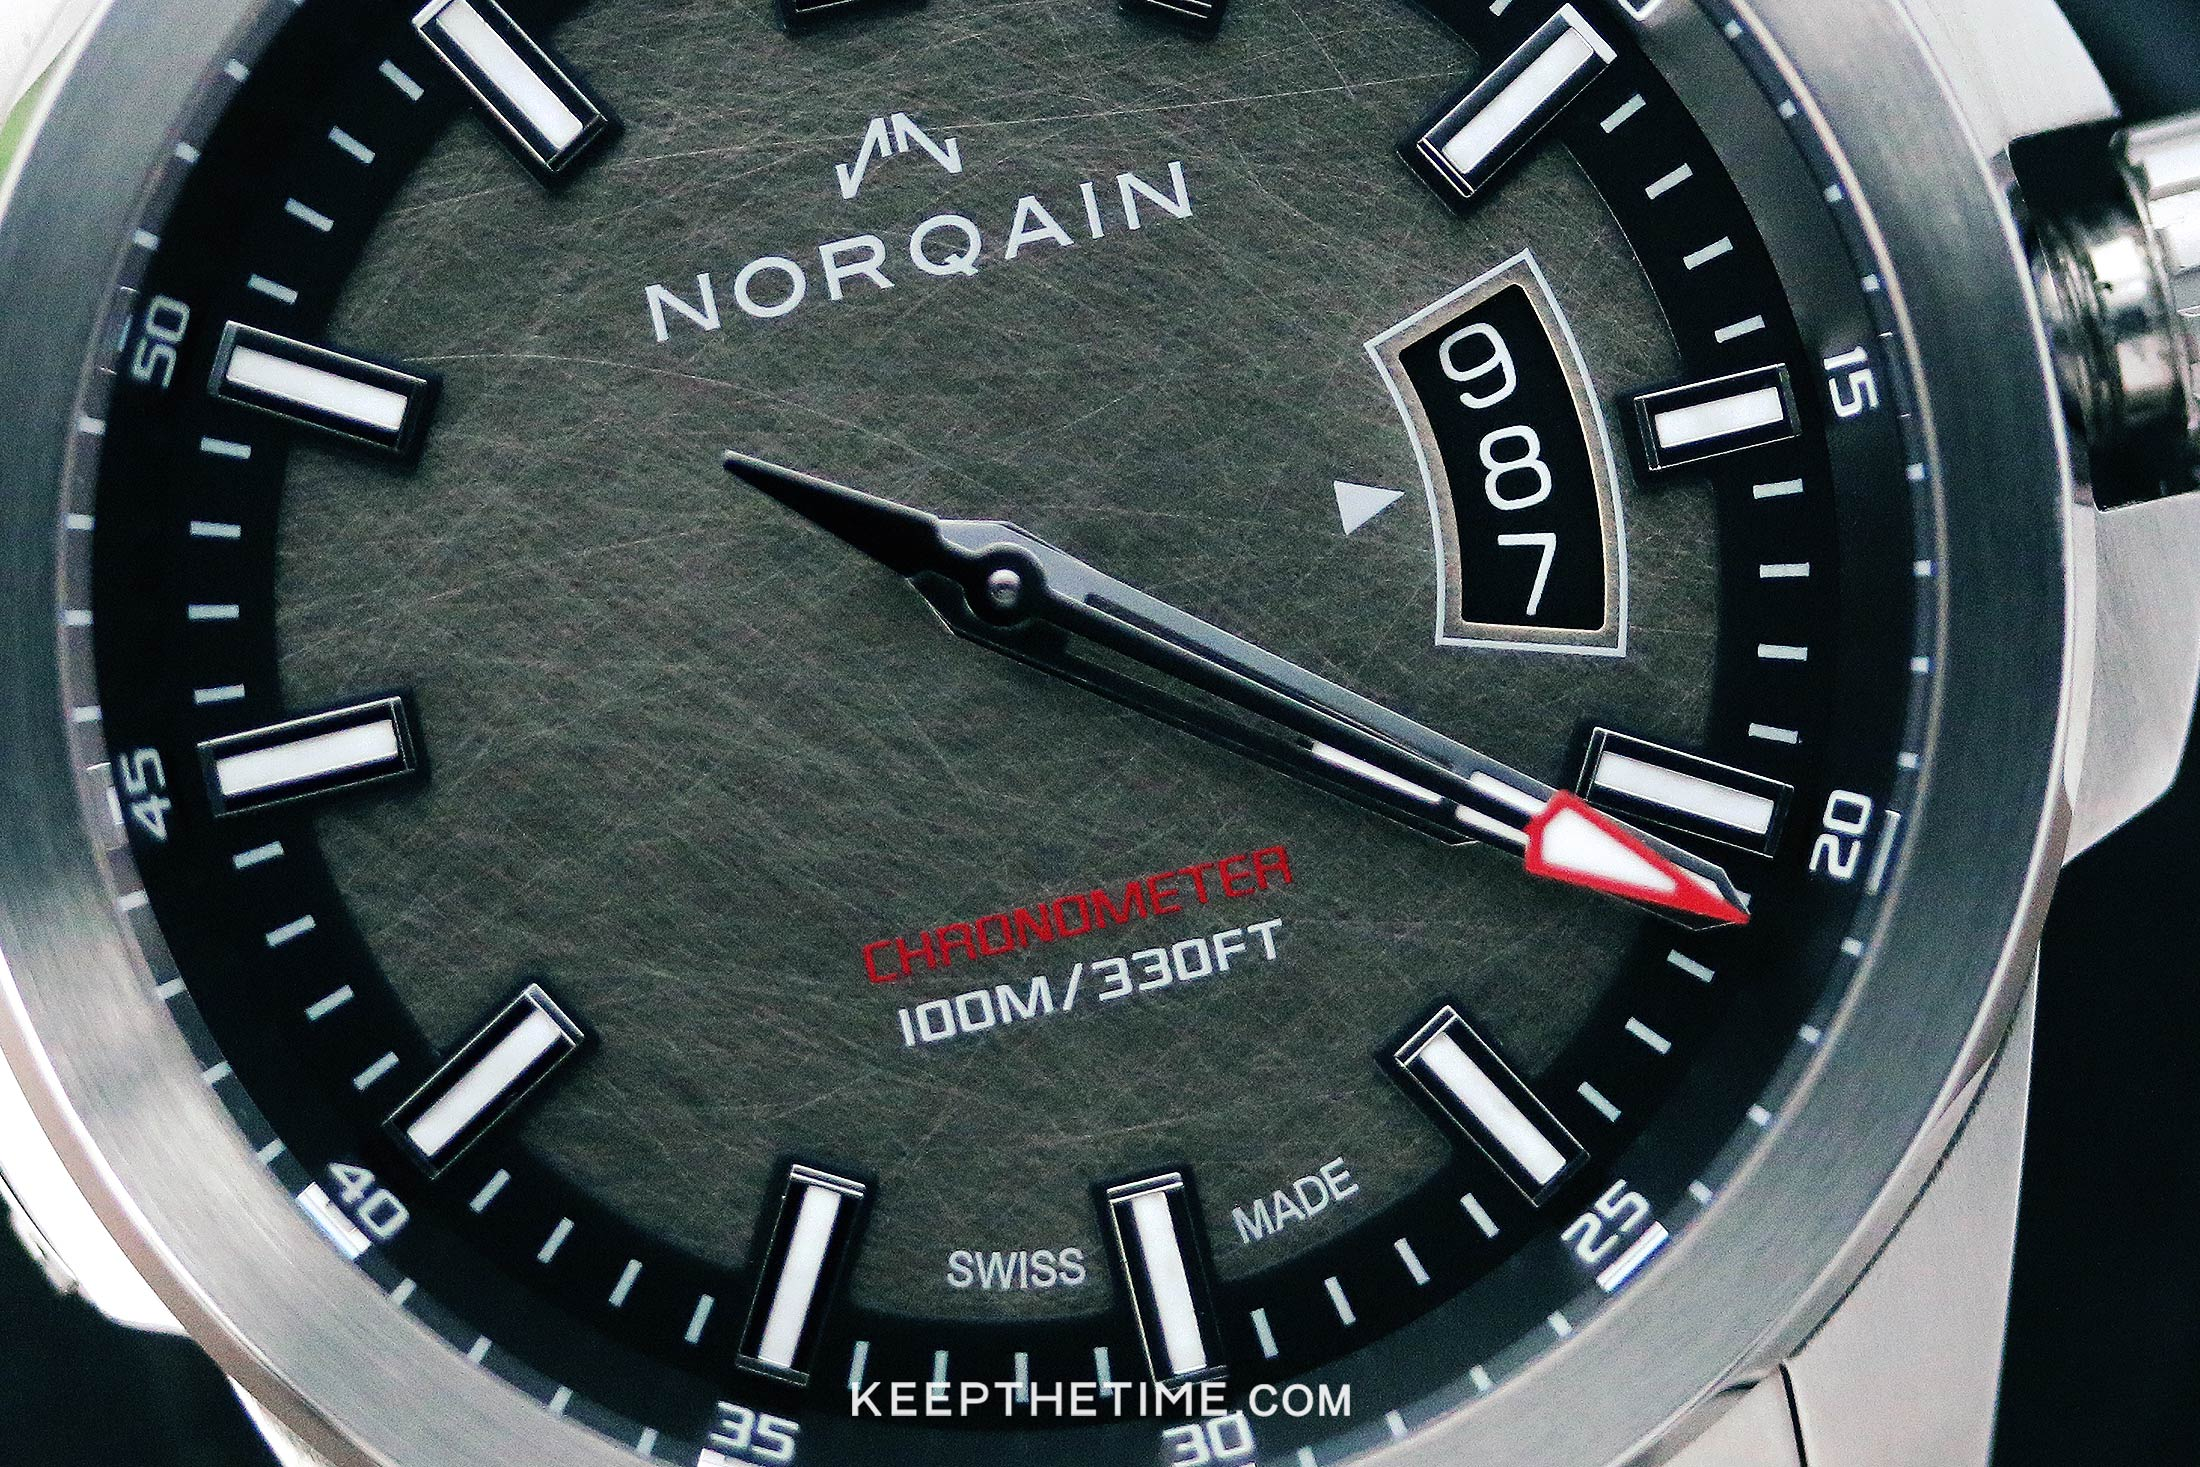 Norqain Independence 19 (limited edition)